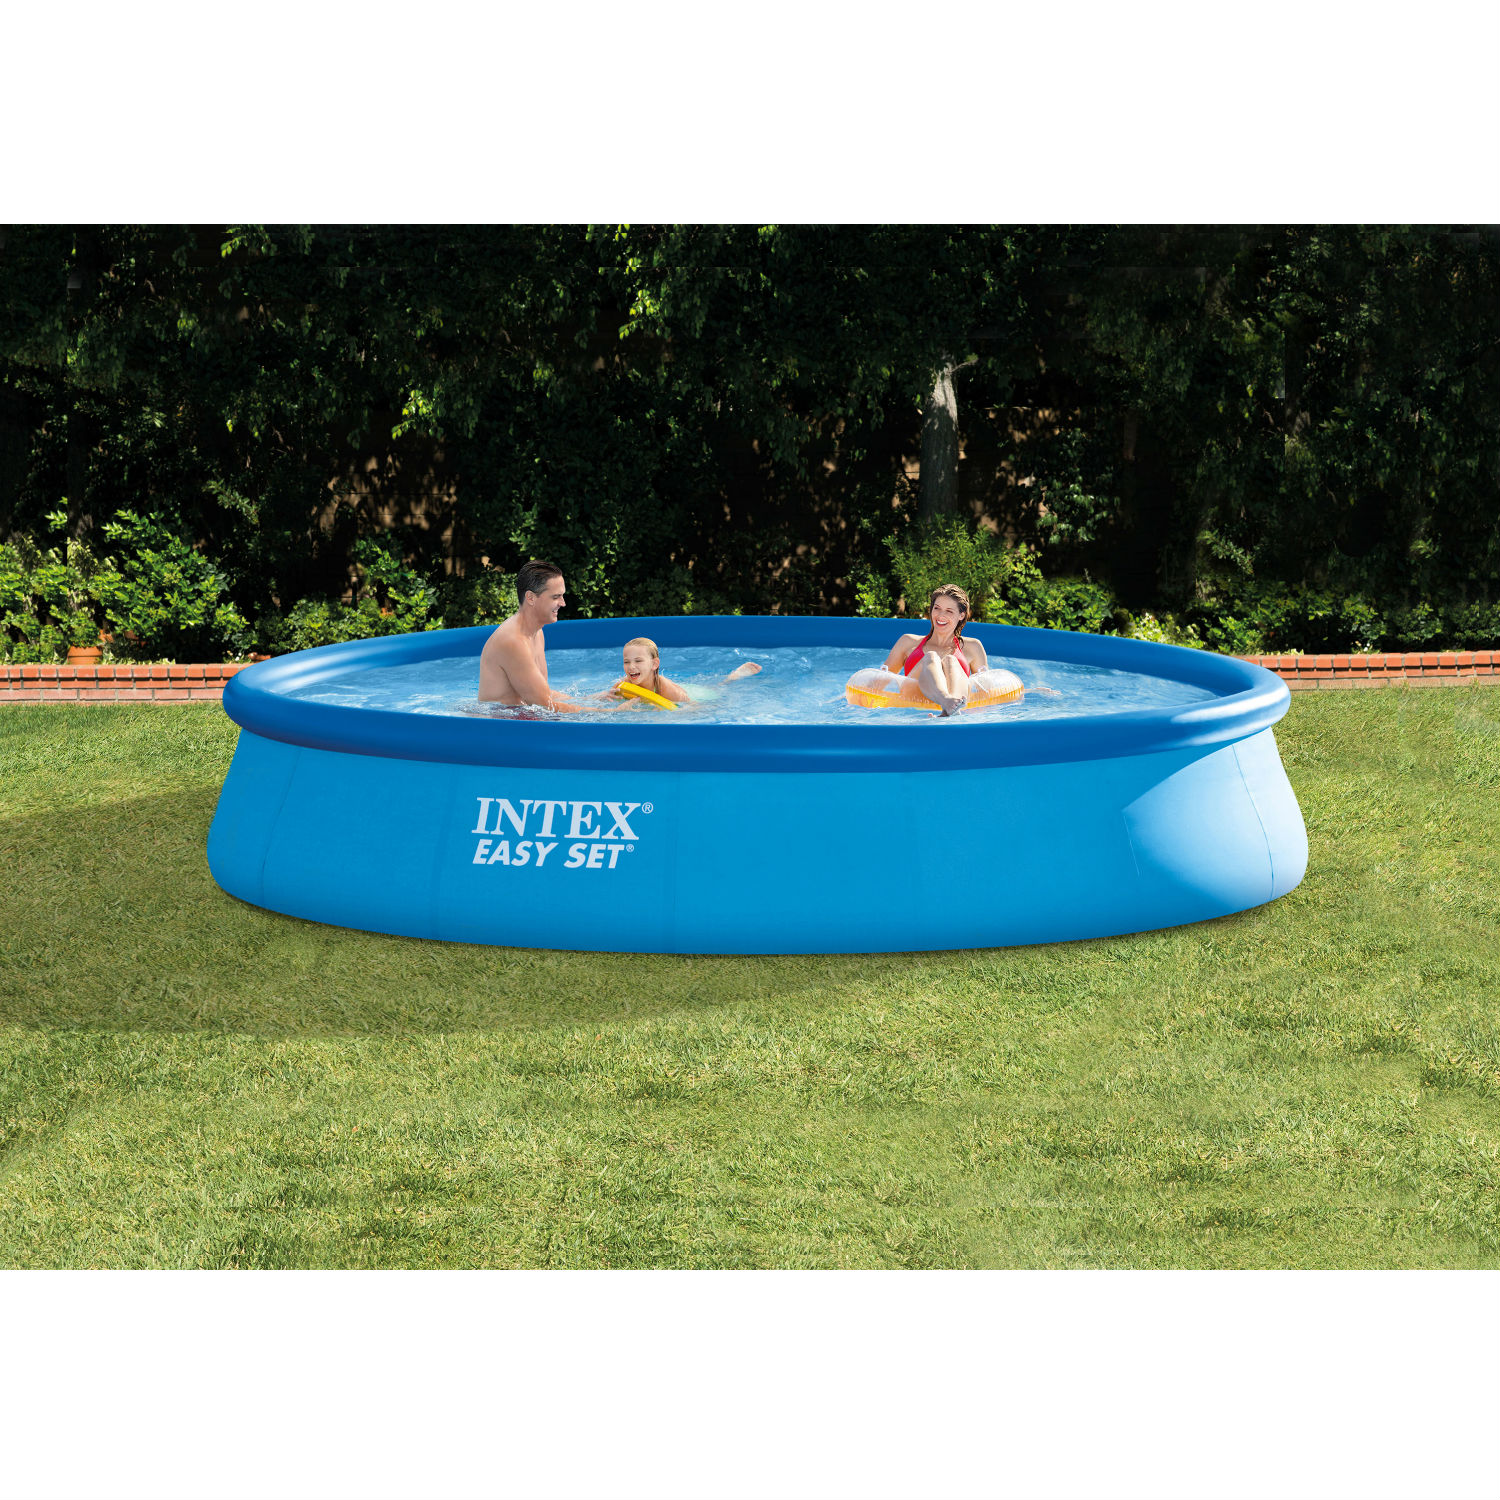 Pool Filterpumpe Betrieb Intex 13 39 X 33 39 39 Easy Set Above Ground Swimming Pool With